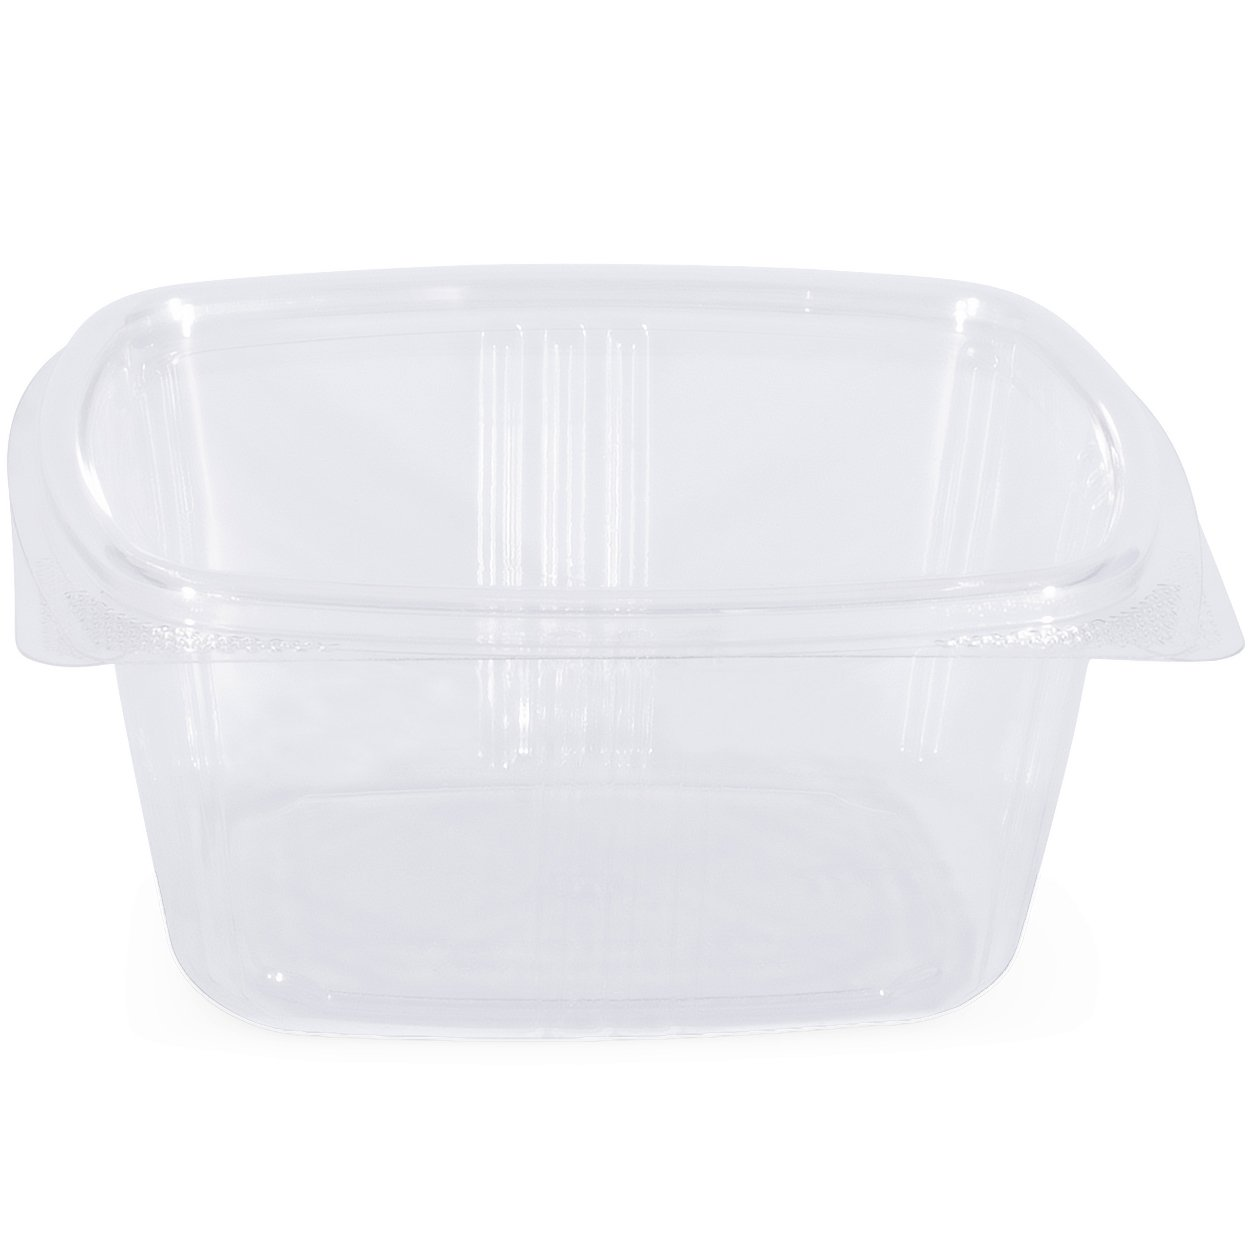 Simply Deliver 16 oz Hinged Lid Deli Container with